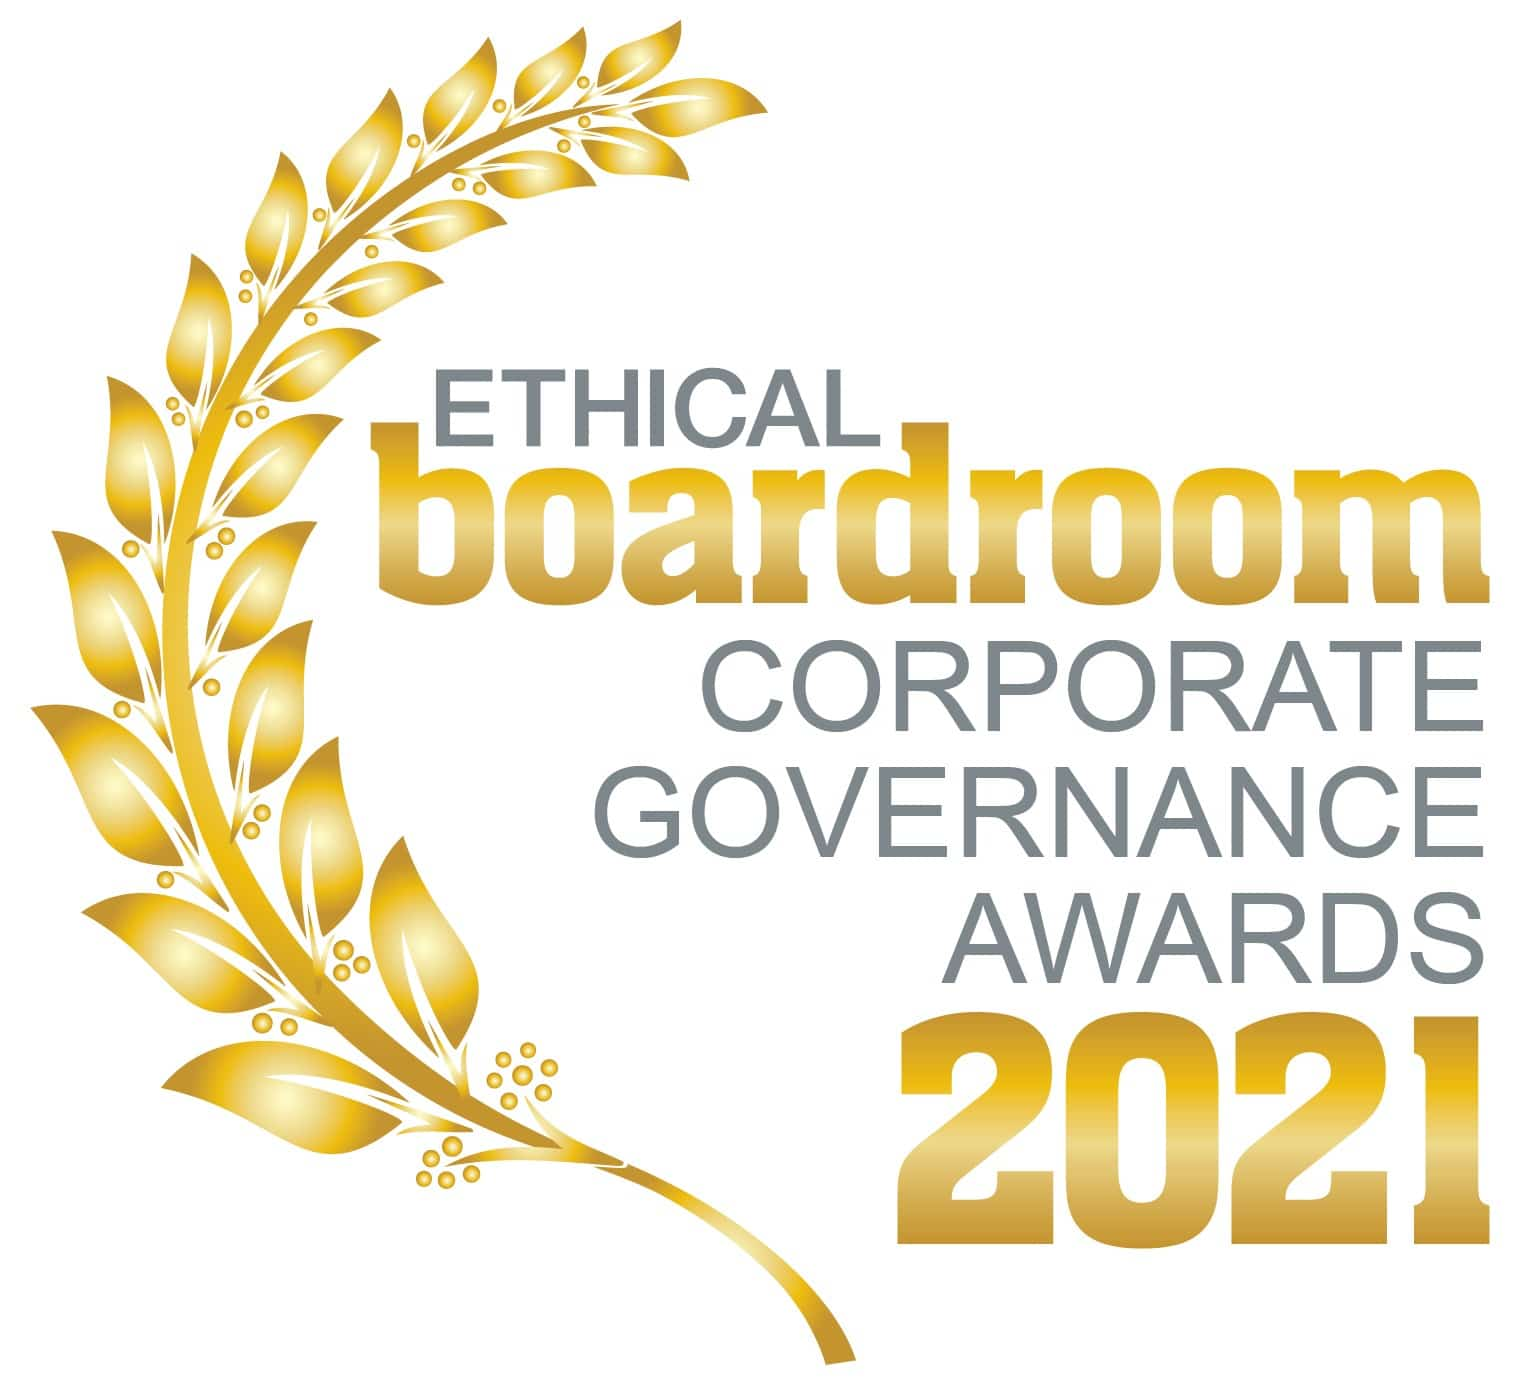 Corporate Governance Winners 2021 – The Americas & Caribbean Ethical Boardroom